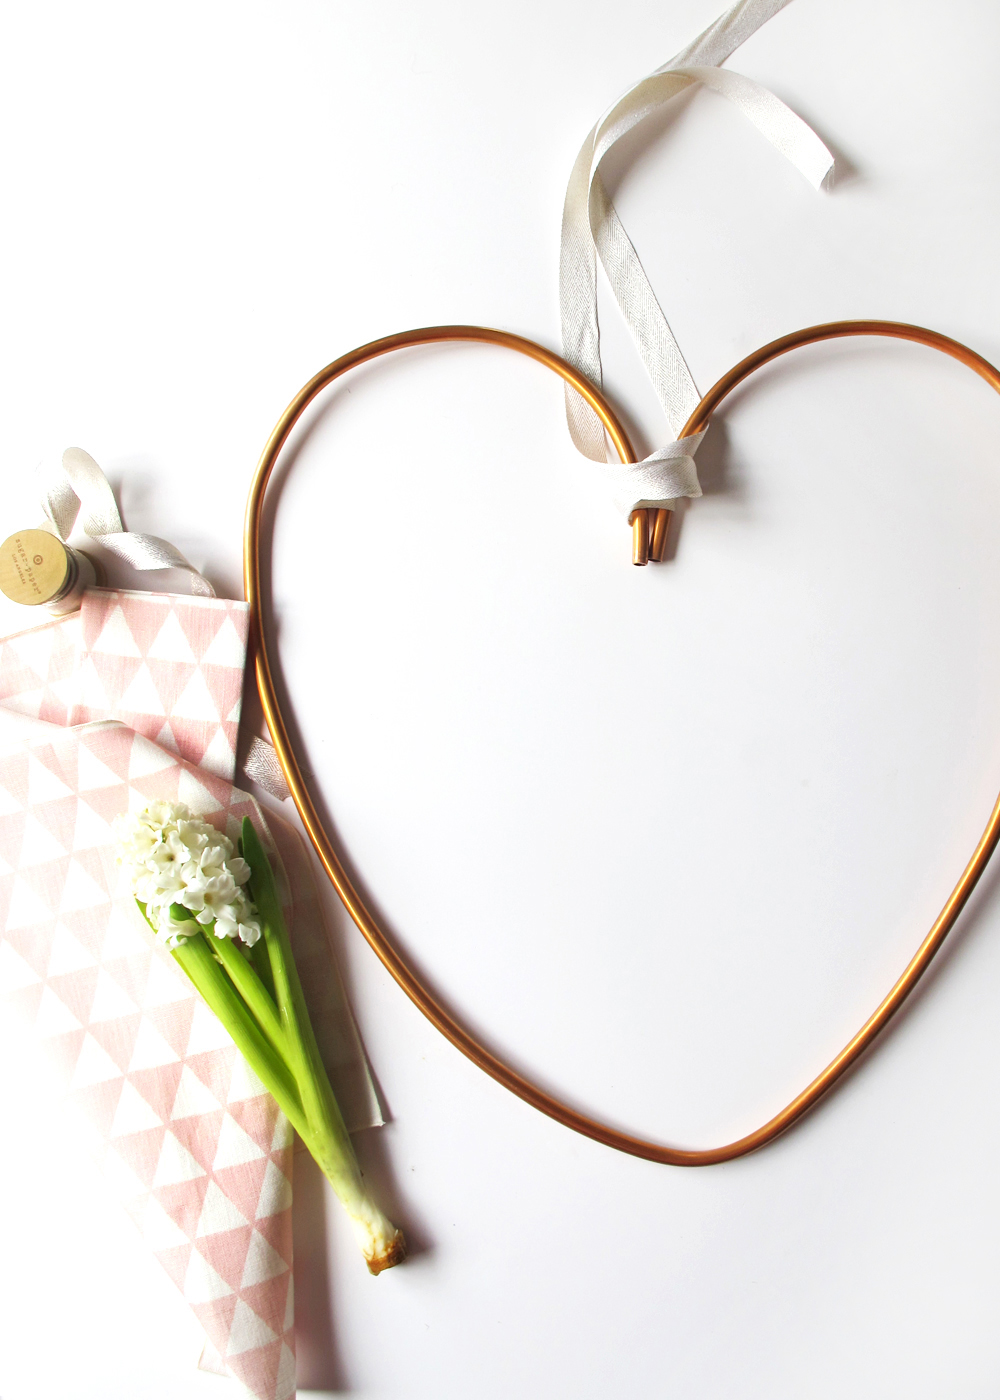 make your own copper heart wreath using soft copper tubing